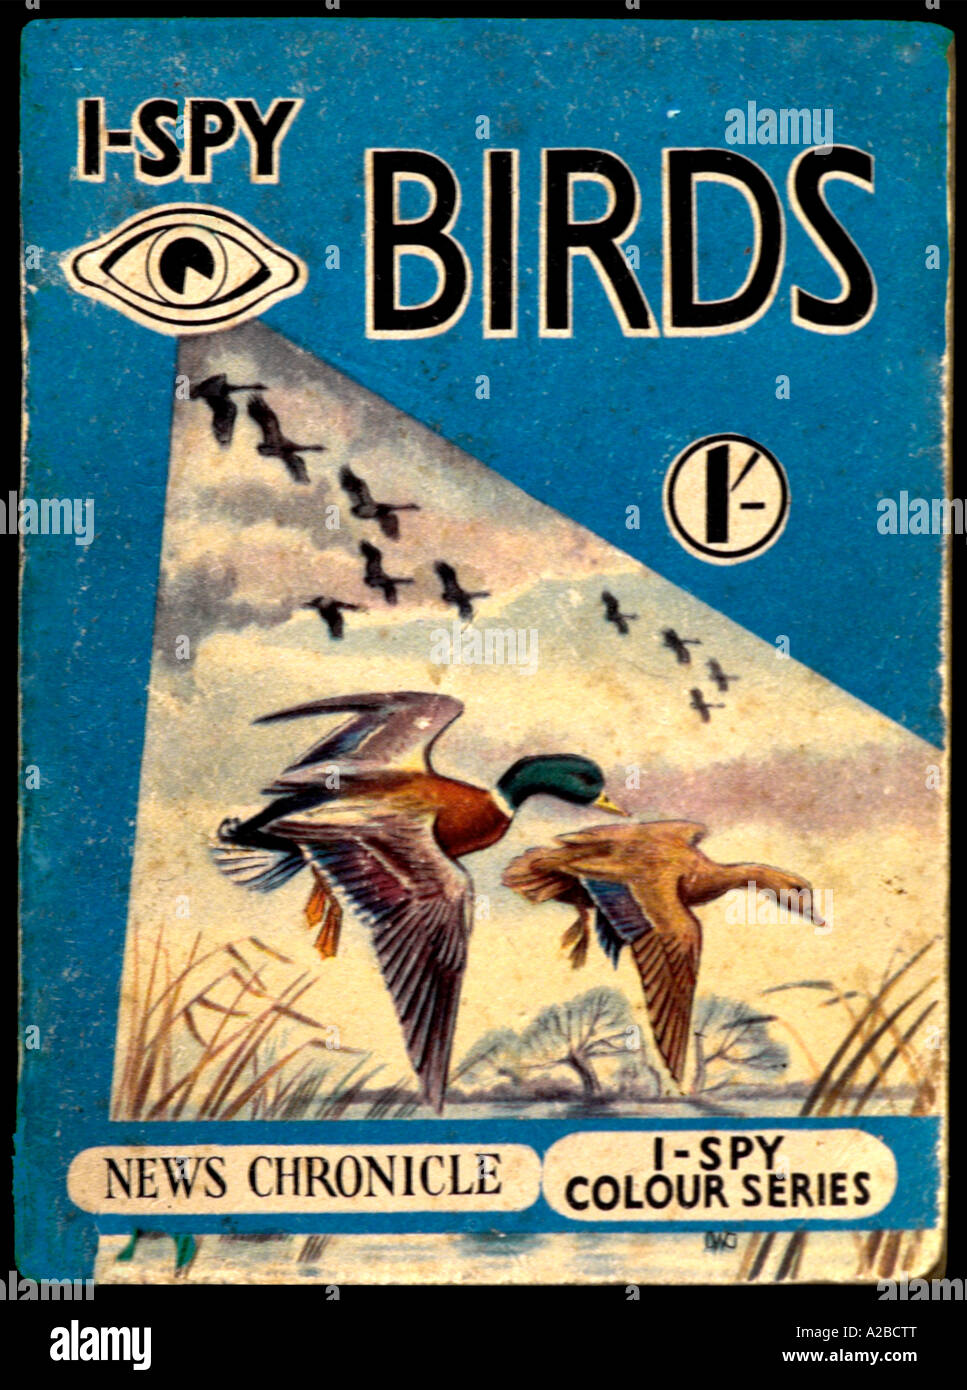 I-Spy Books 1950 1960 pour un usage éditorial uniquement Photo Stock